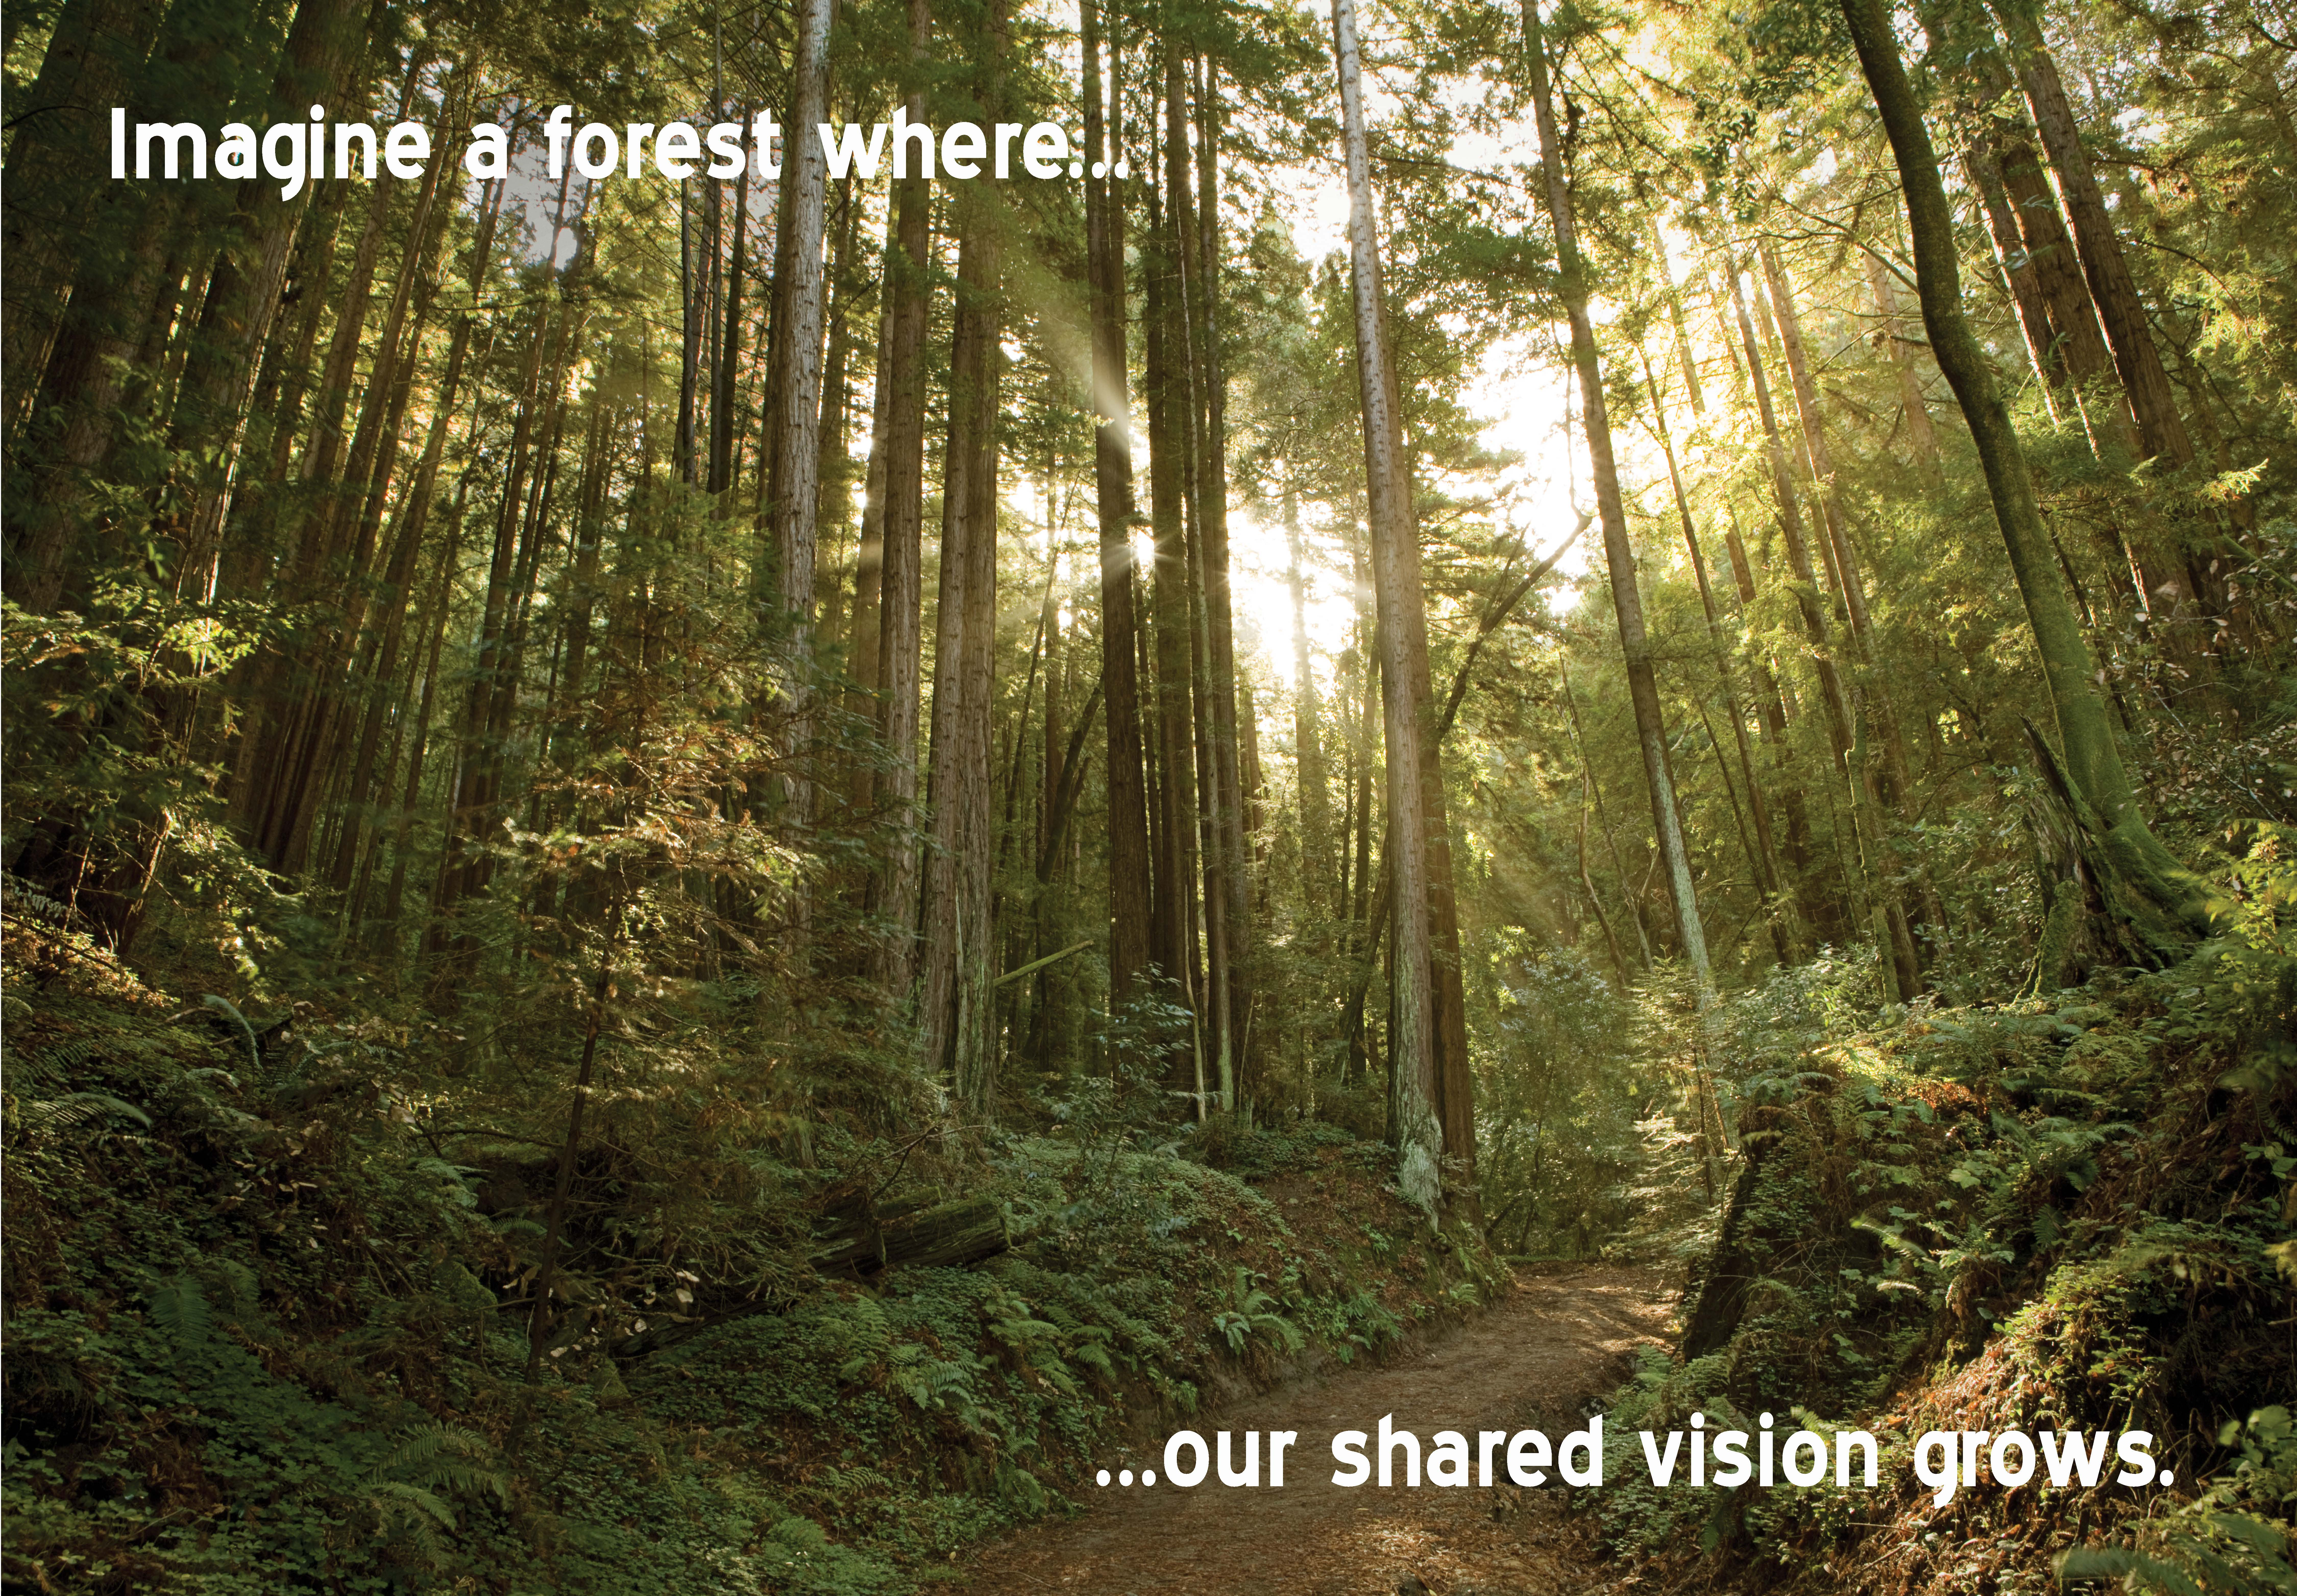 Community Forest Vision: Imagine a forest where our shared vision grows.